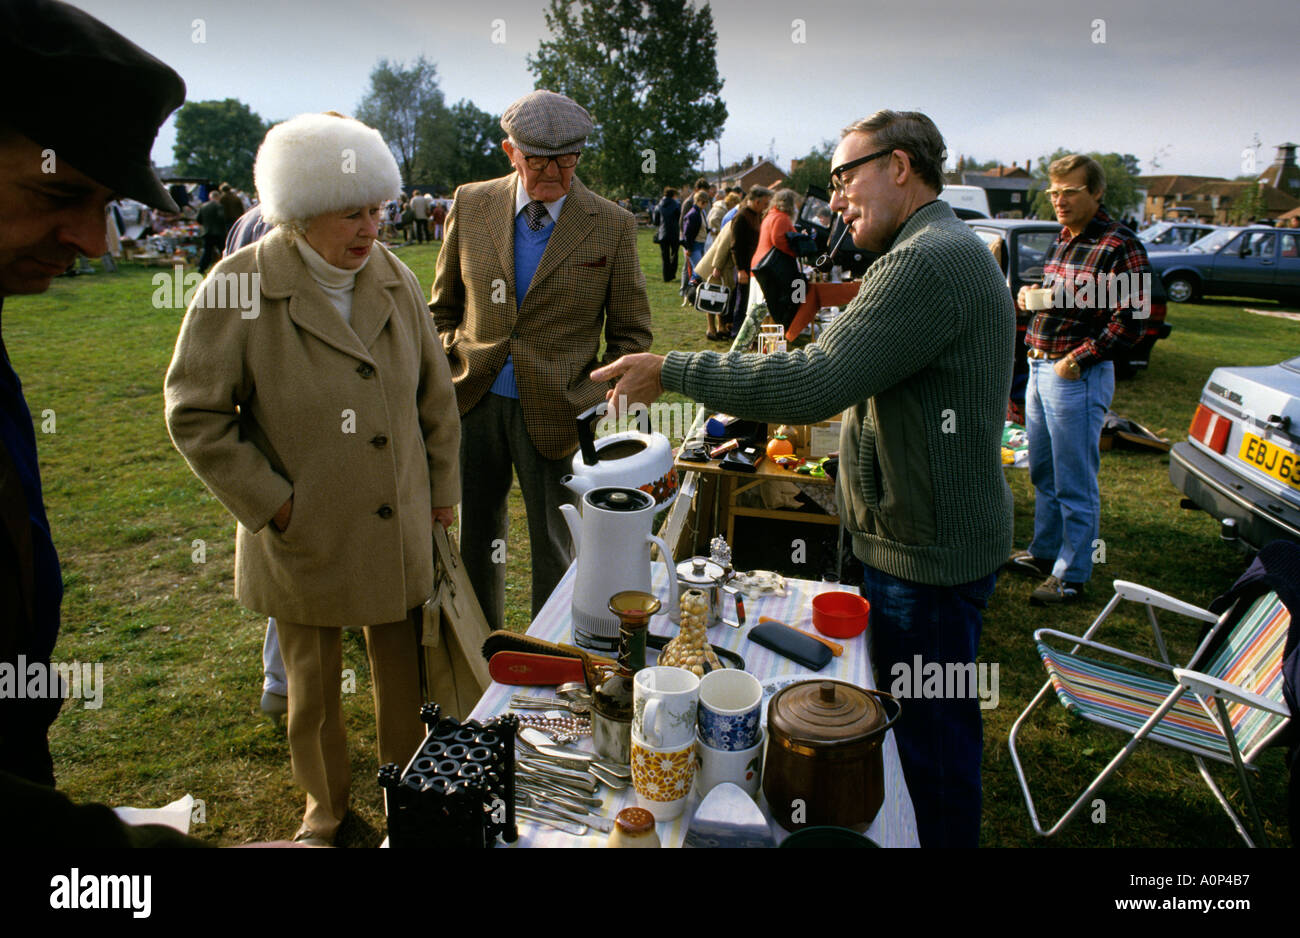 ENGLAND CAR BOOT SALE  PHOTOGS FATHER SELLING SO MODEL RELEASED - Stock Image